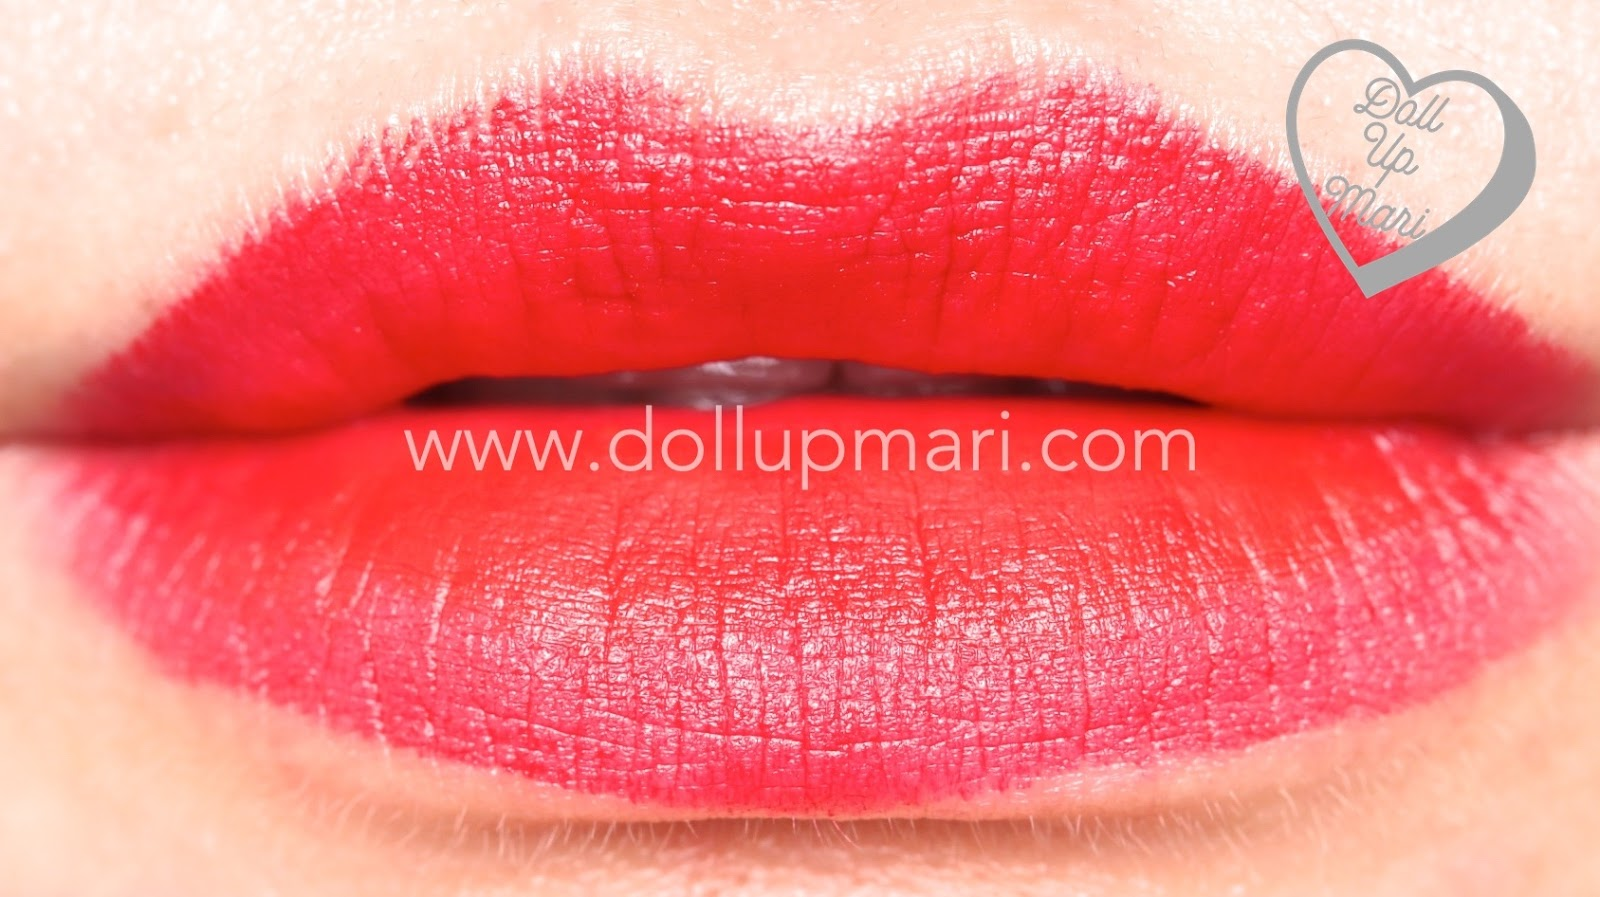 lip swatch of Red Supreme shade of AVON Perfectly Matte Lipstick